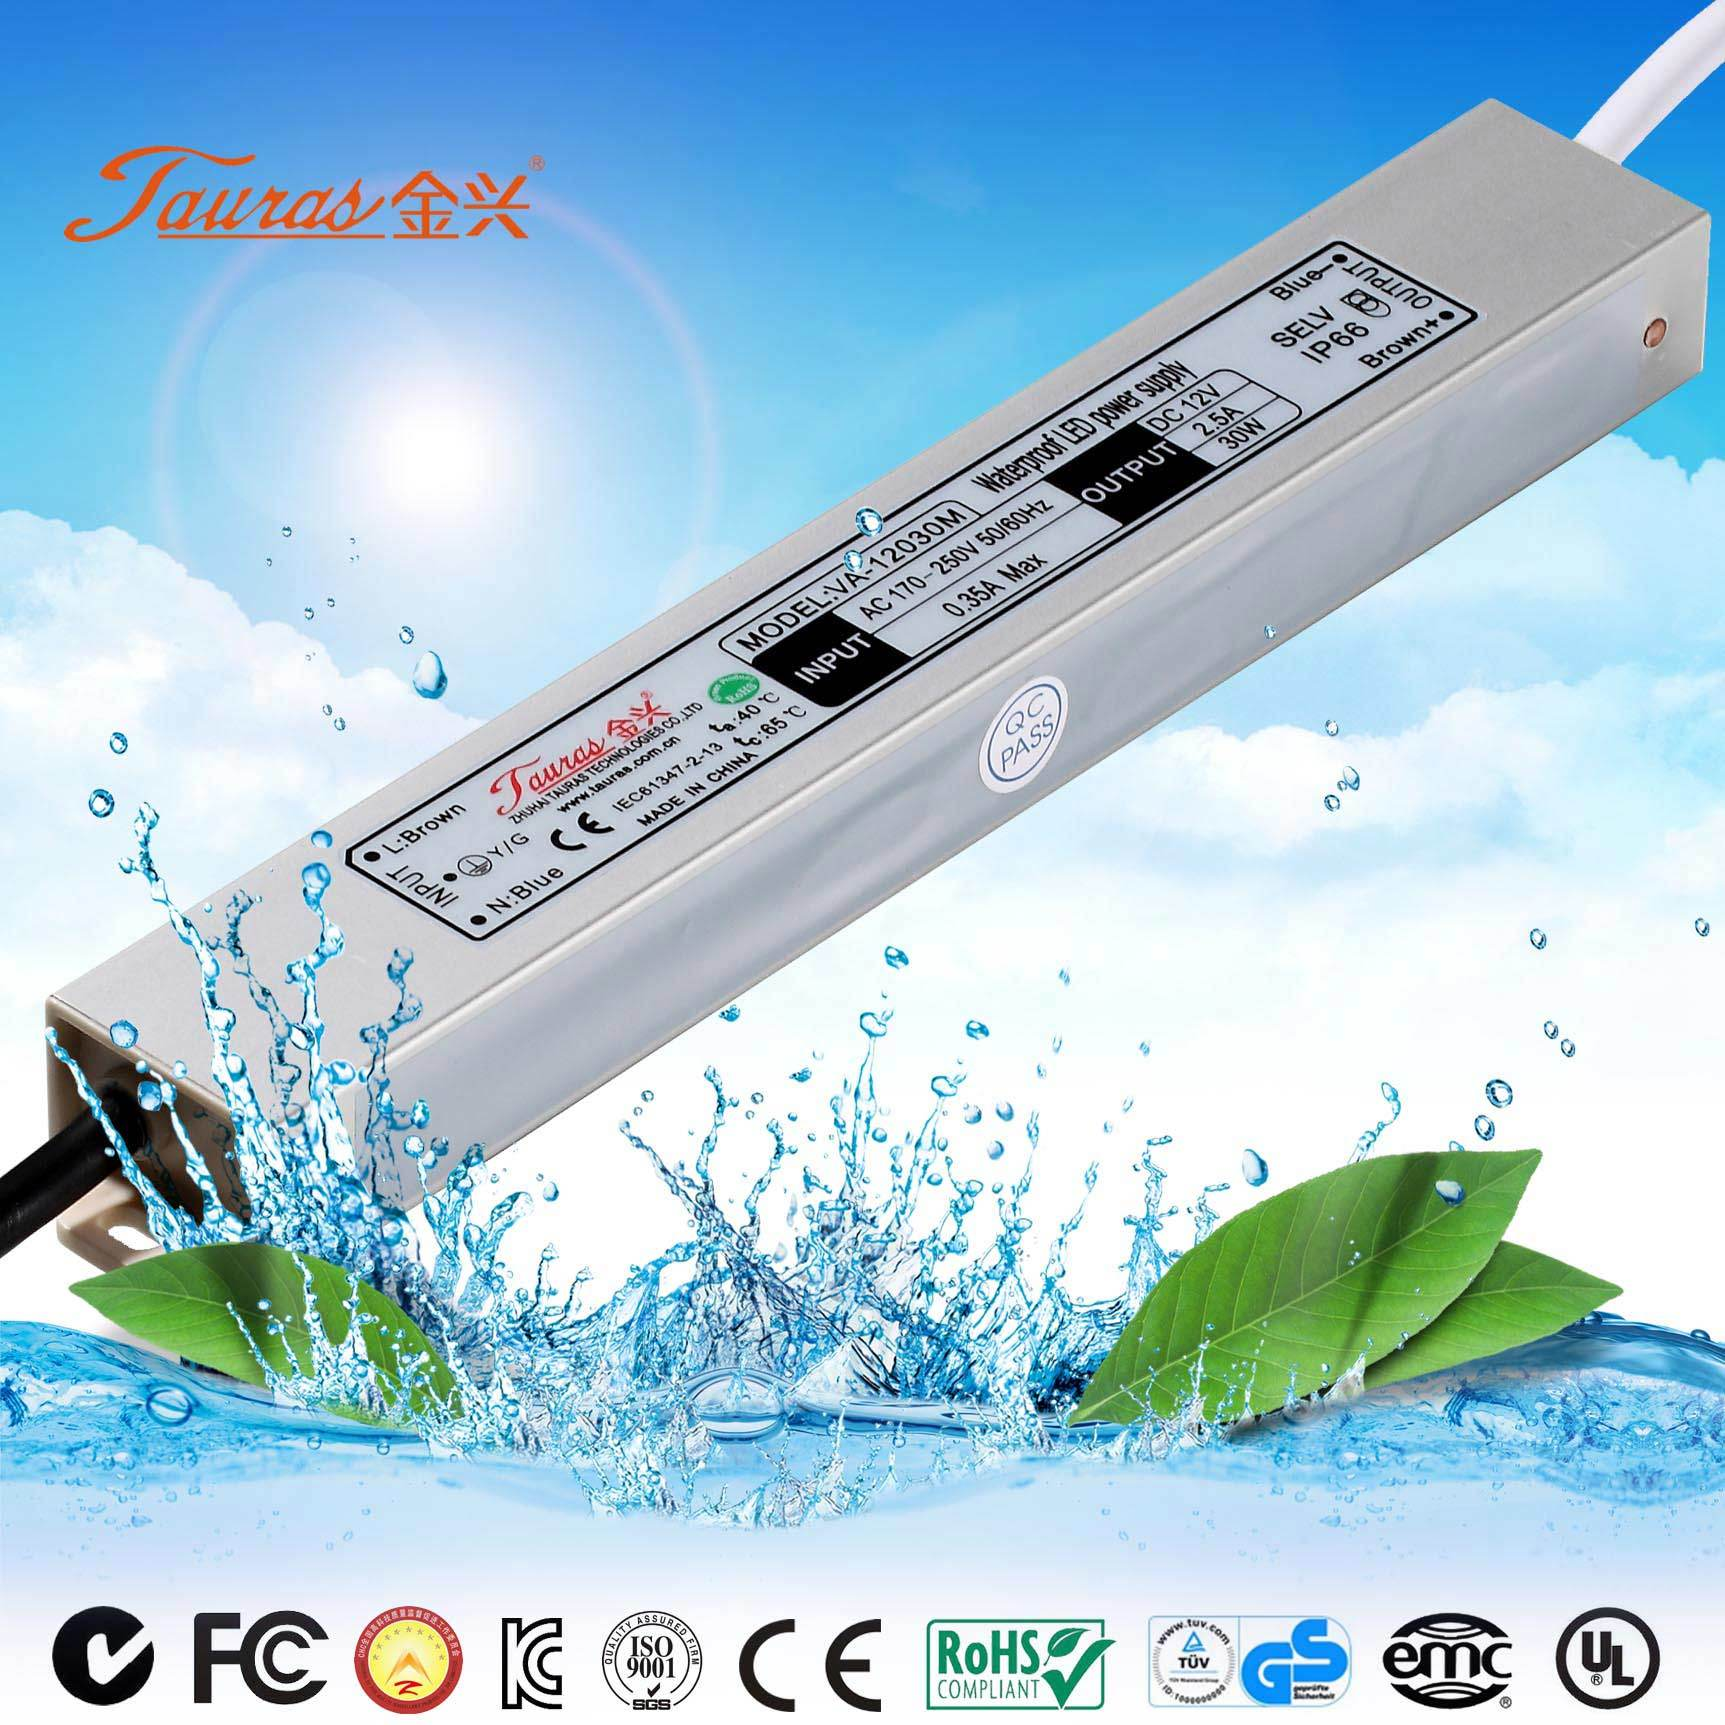 China 30w 12v Constant Voltage Led Driver Va 12030m Switch For Or 24v Dc 96w Lights Specifications Power Supply Waterproof